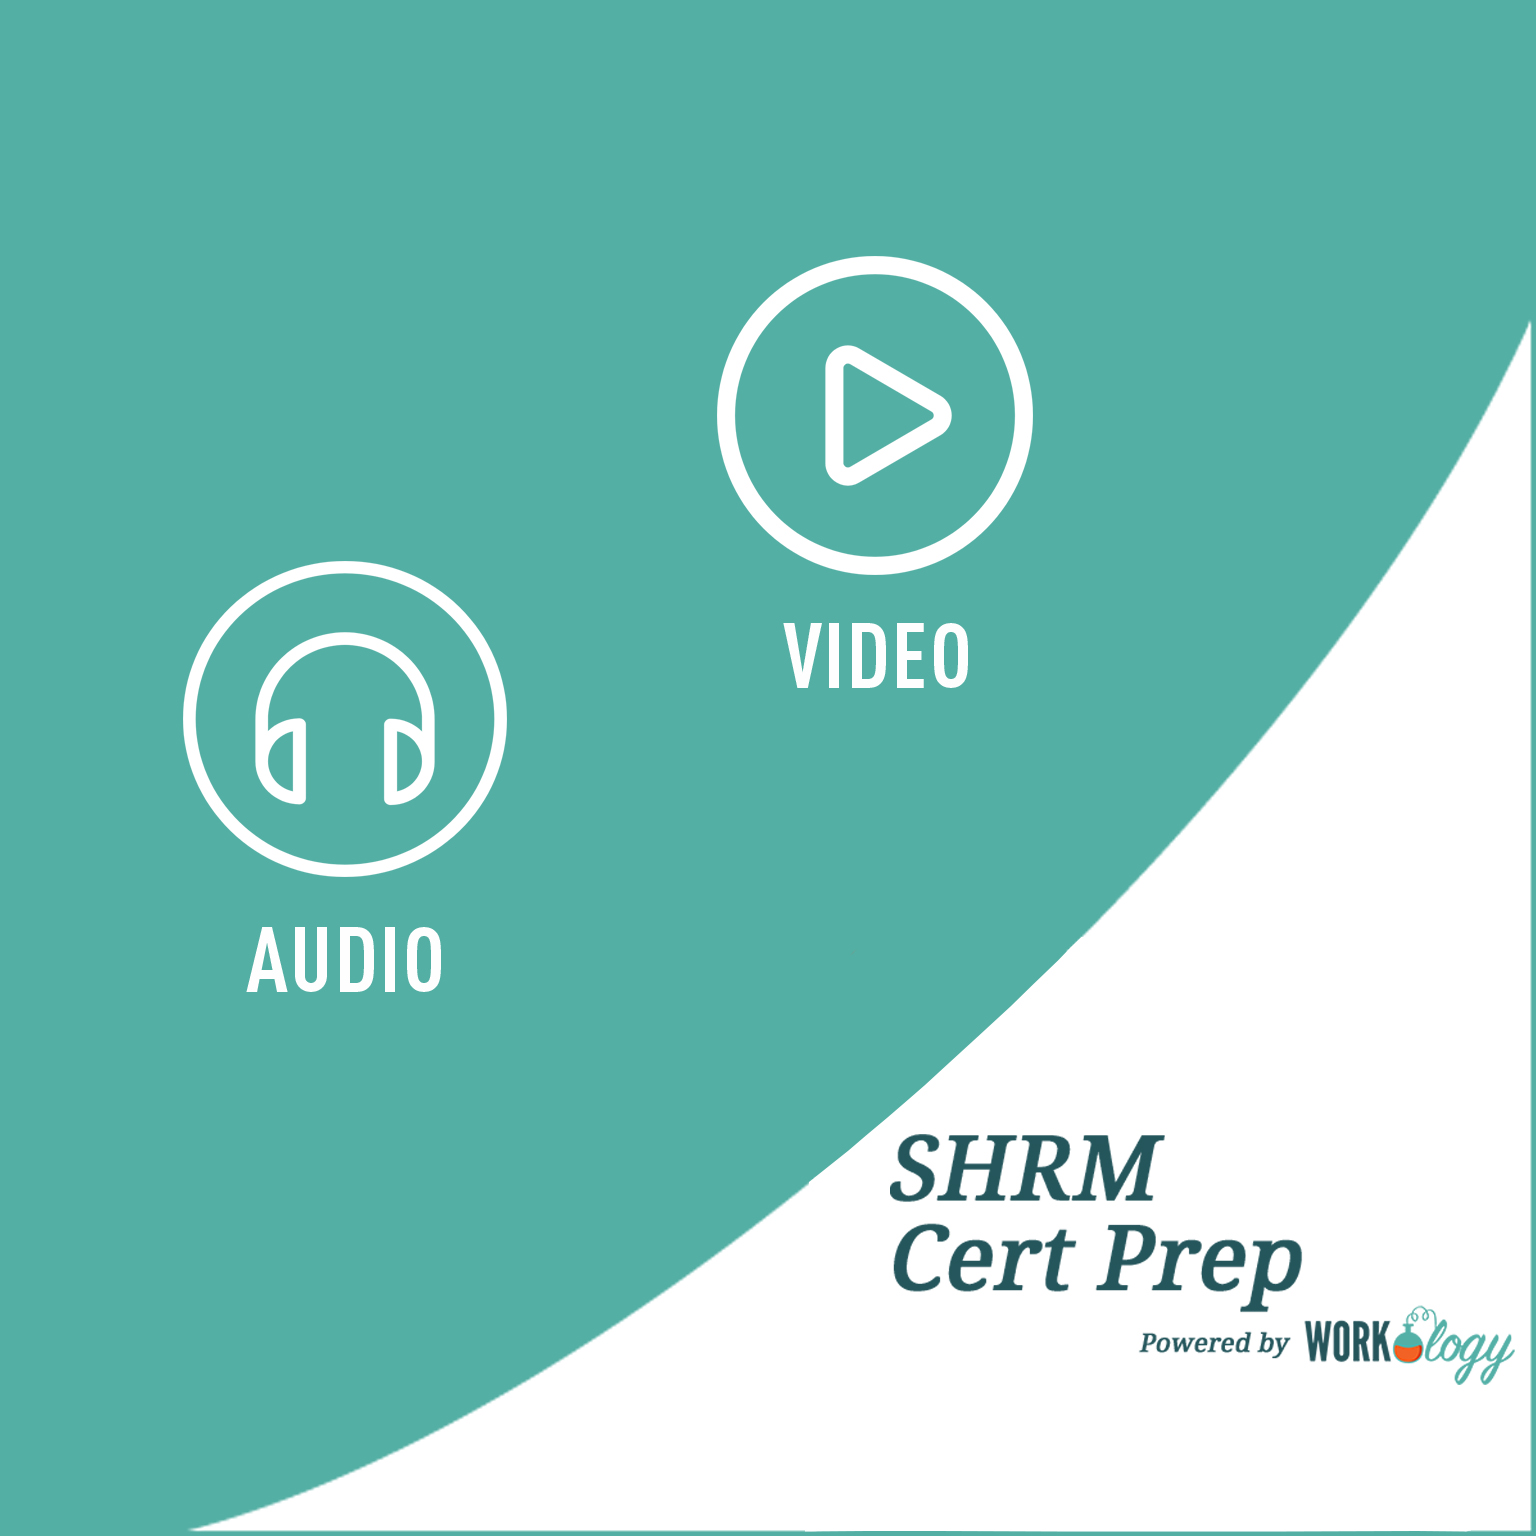 SHRM cert (Audio _ Video)